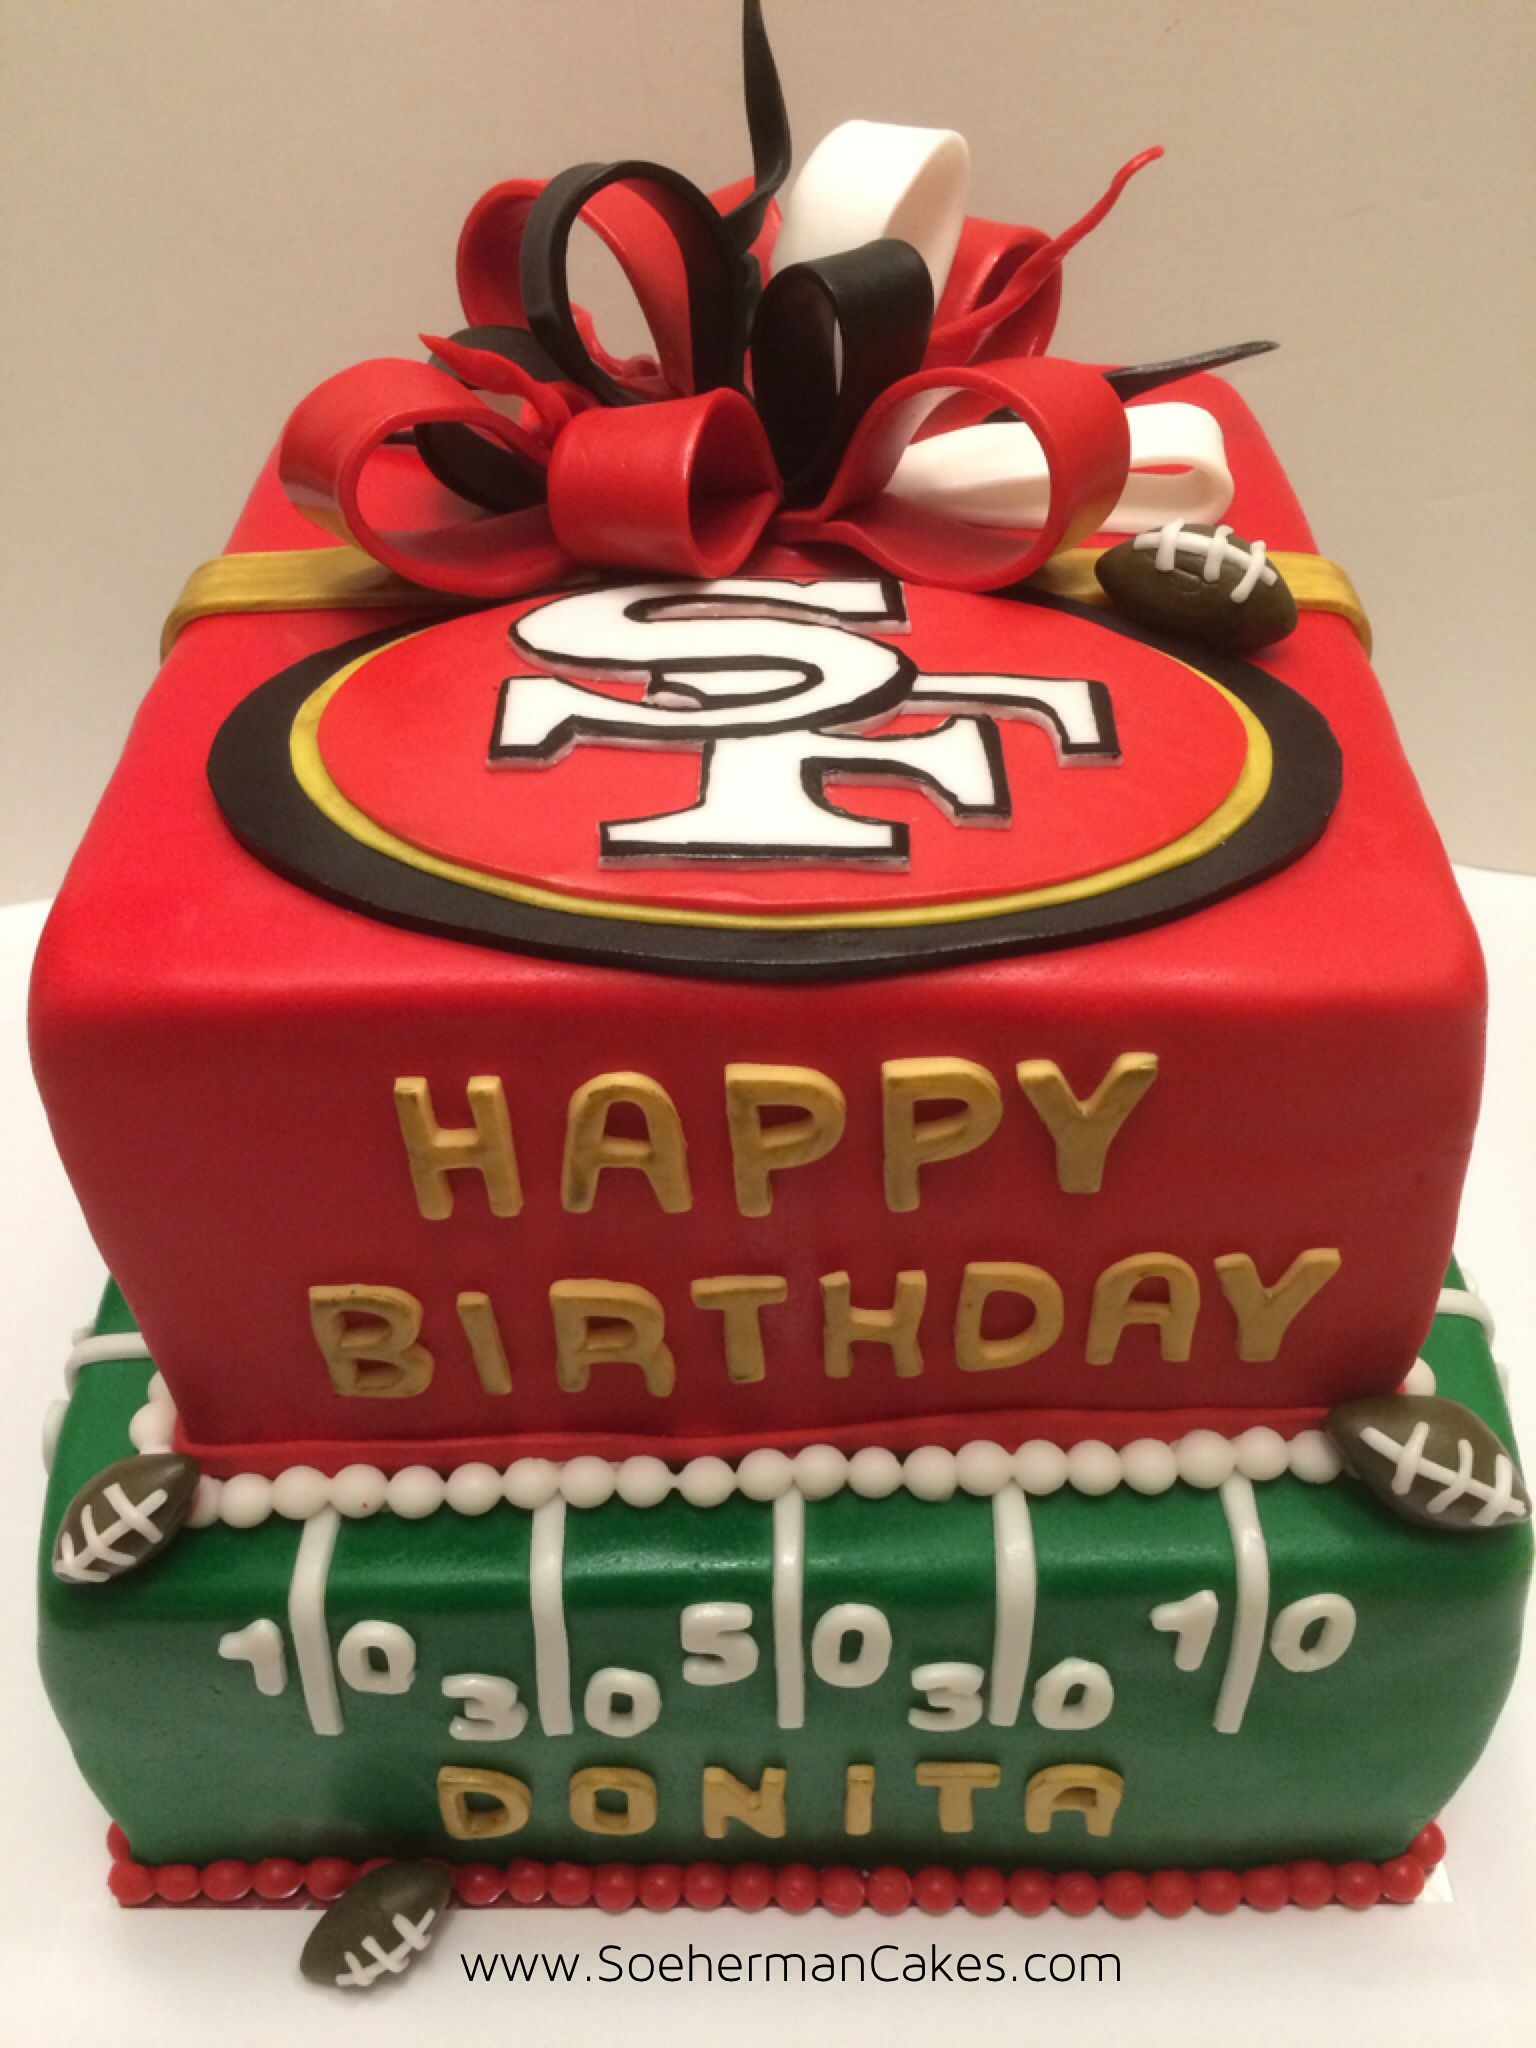 49ers Cake Without Bow For Logan S 1st Birthday With Images